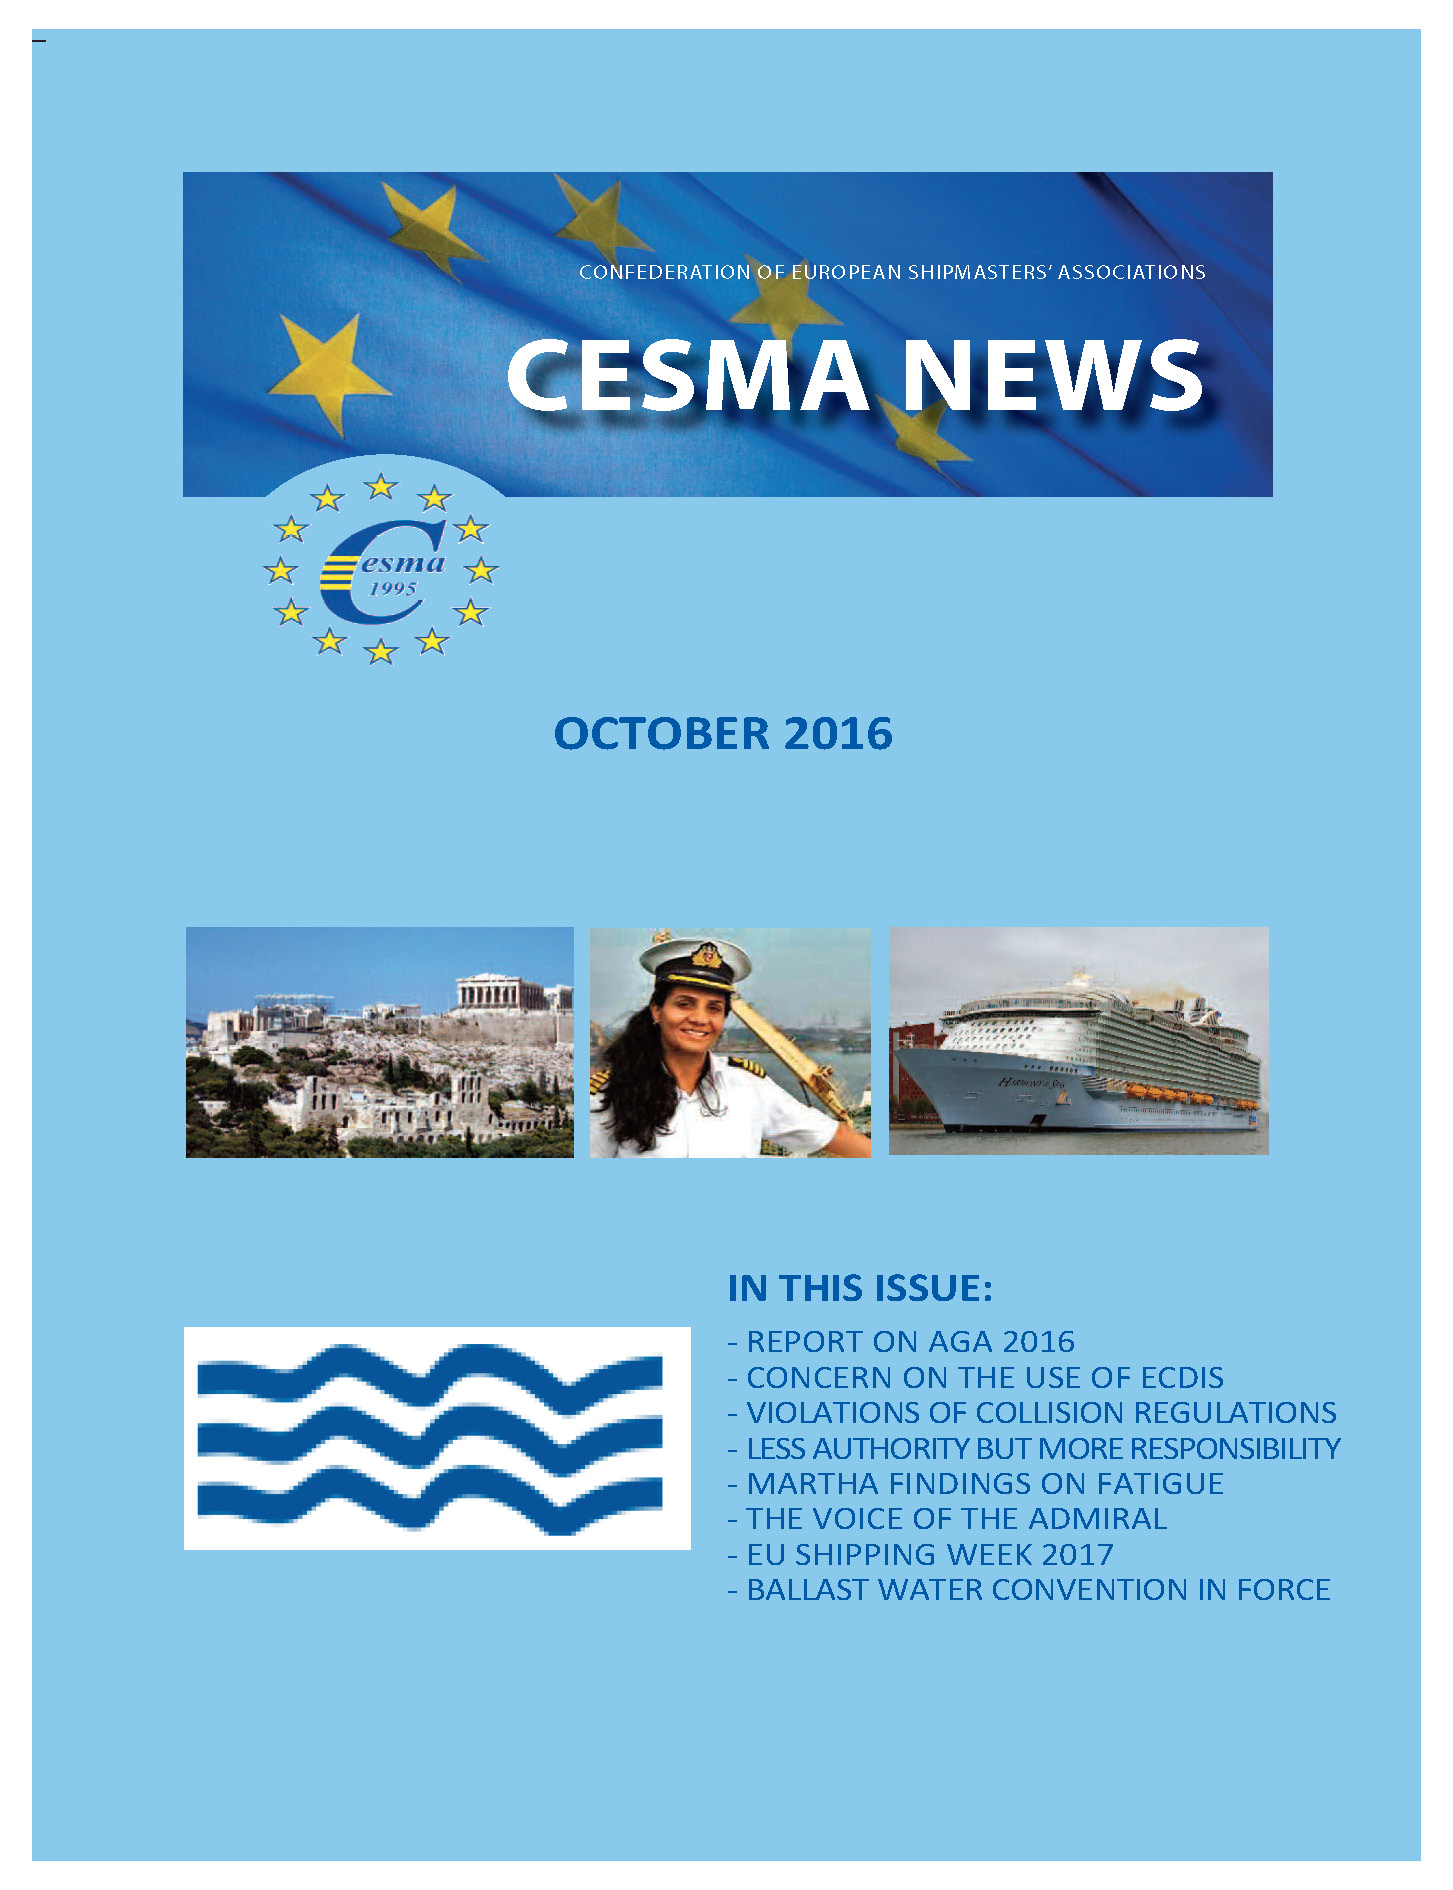 front-page-cesma-news-october-2016